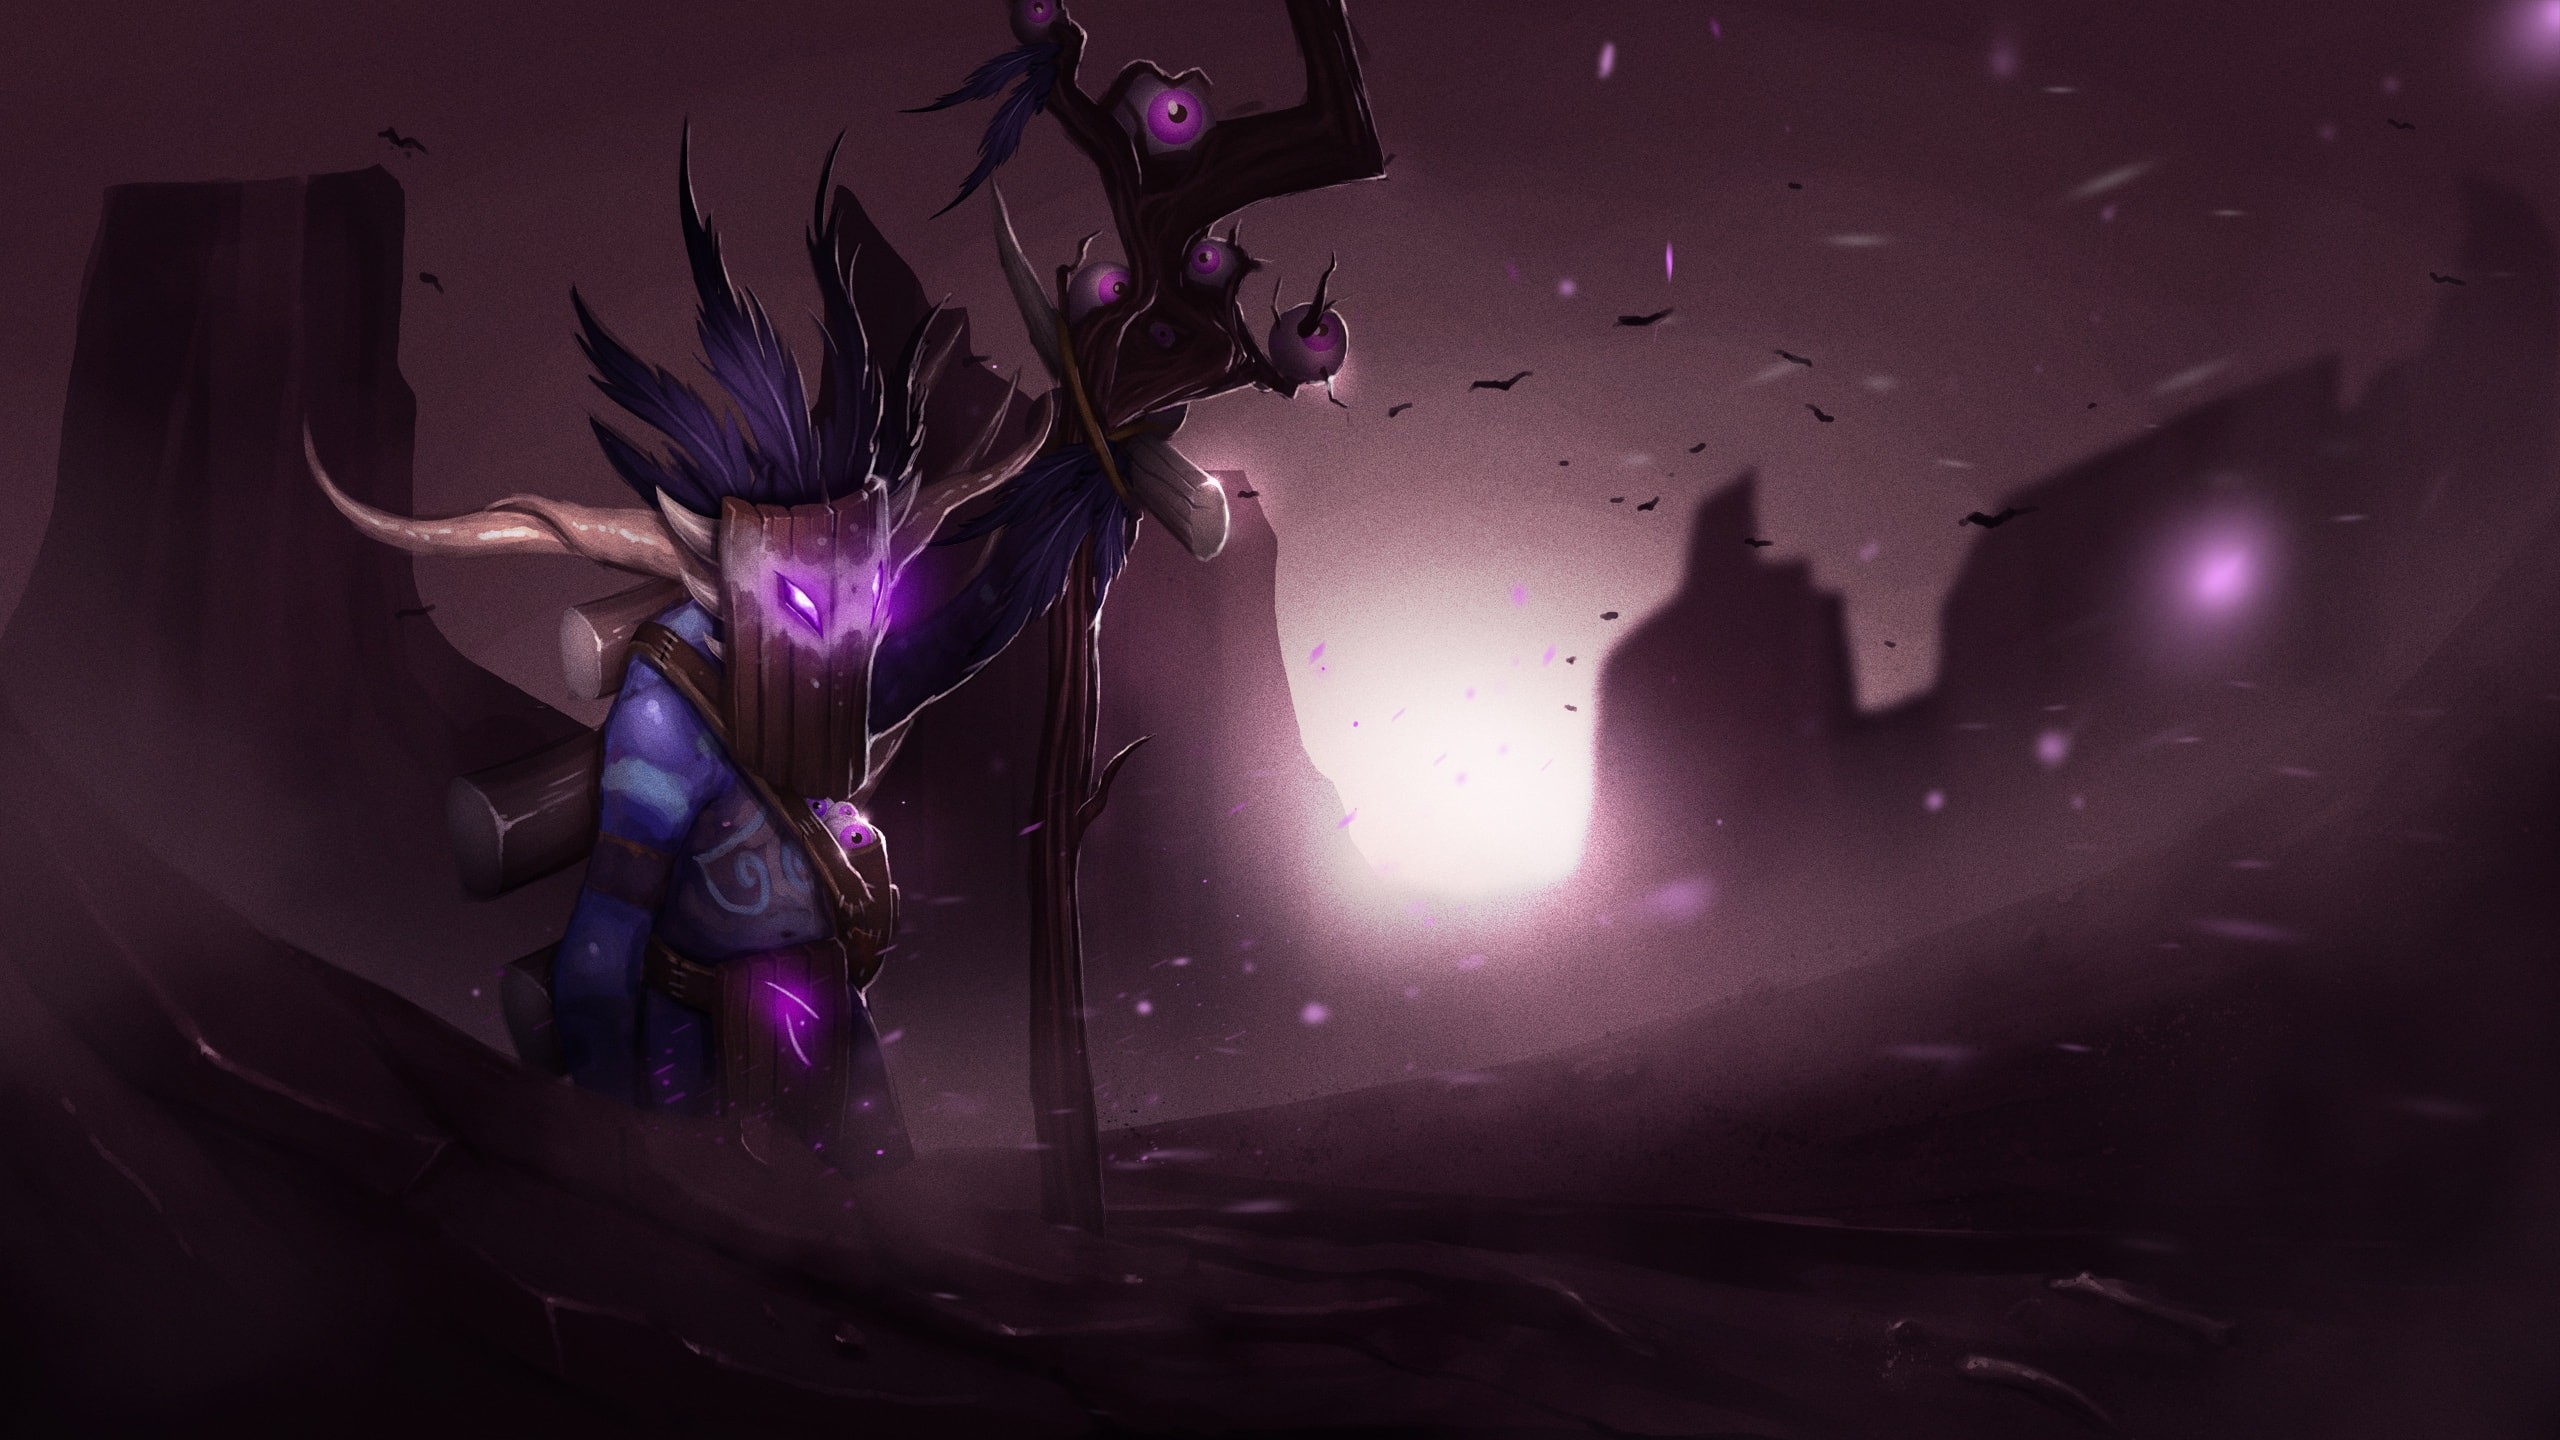 2560x1440 Dota2 : Witch Doctor Wallpapers Dota2 : Witch Doctor Wallpapers hd